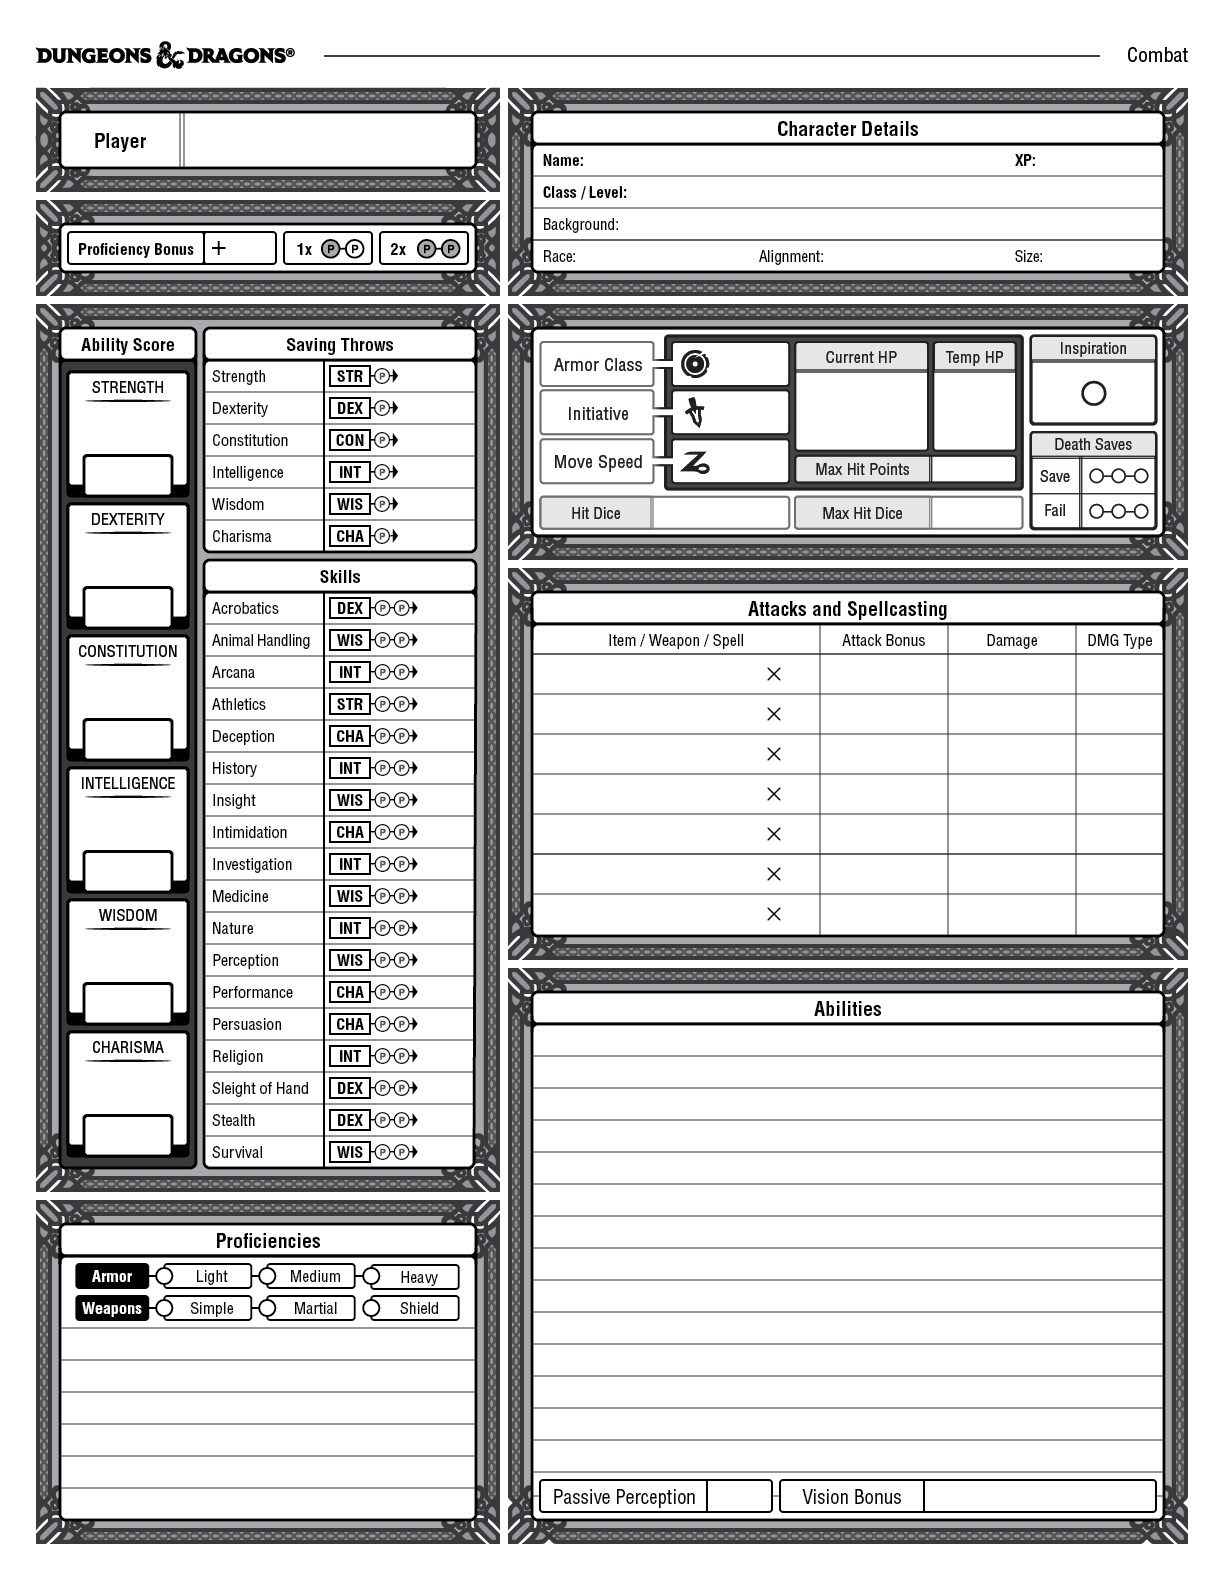 william lu character sheet for 5th edition resume combat fast food restaurant proper Resume D&d Character Sheet Resume